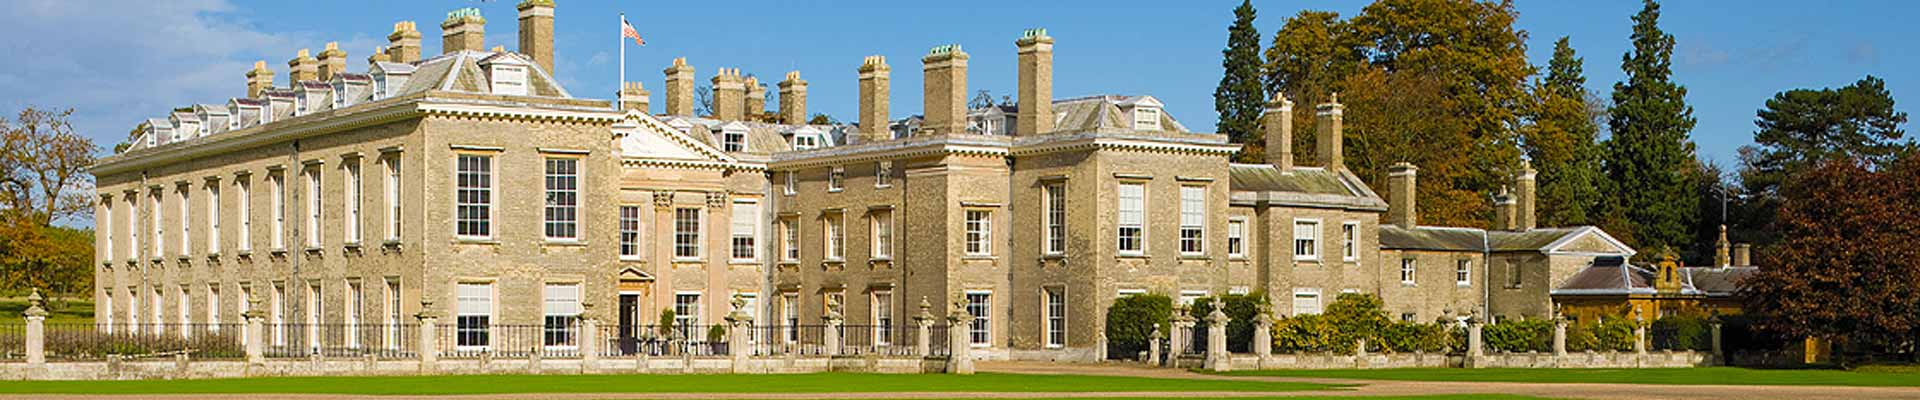 Photo of the very grand Althorp